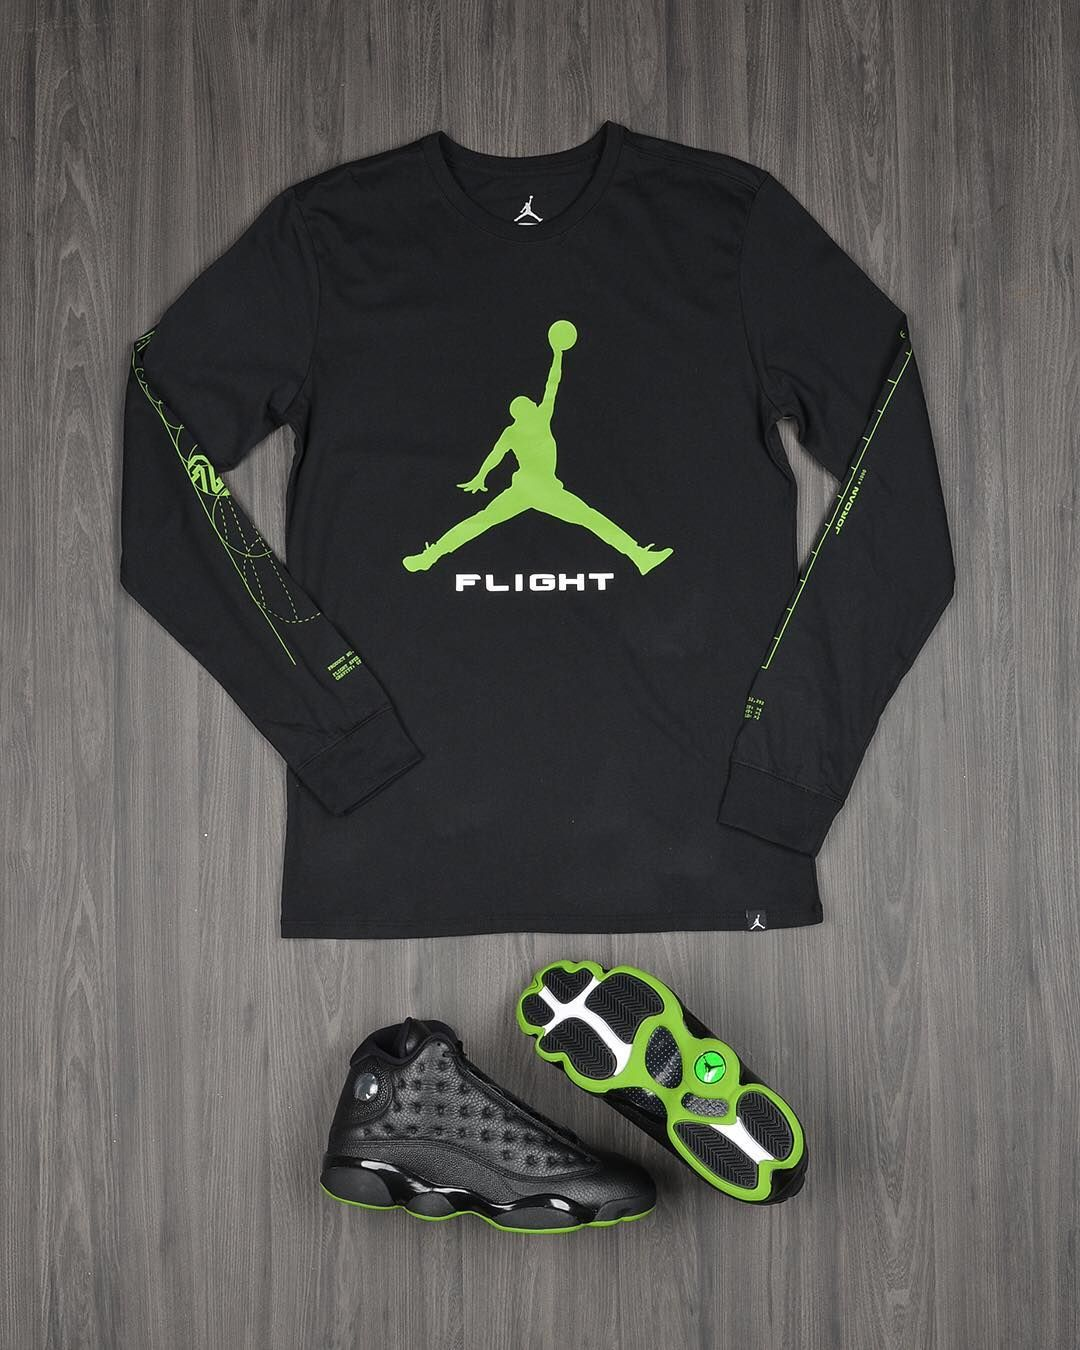 cc2225d0f42 Air #Jordan 13 Altitude Collection: Pick up the new #Jordan 13 Altitude  Long Sleeve. Available in stores now.